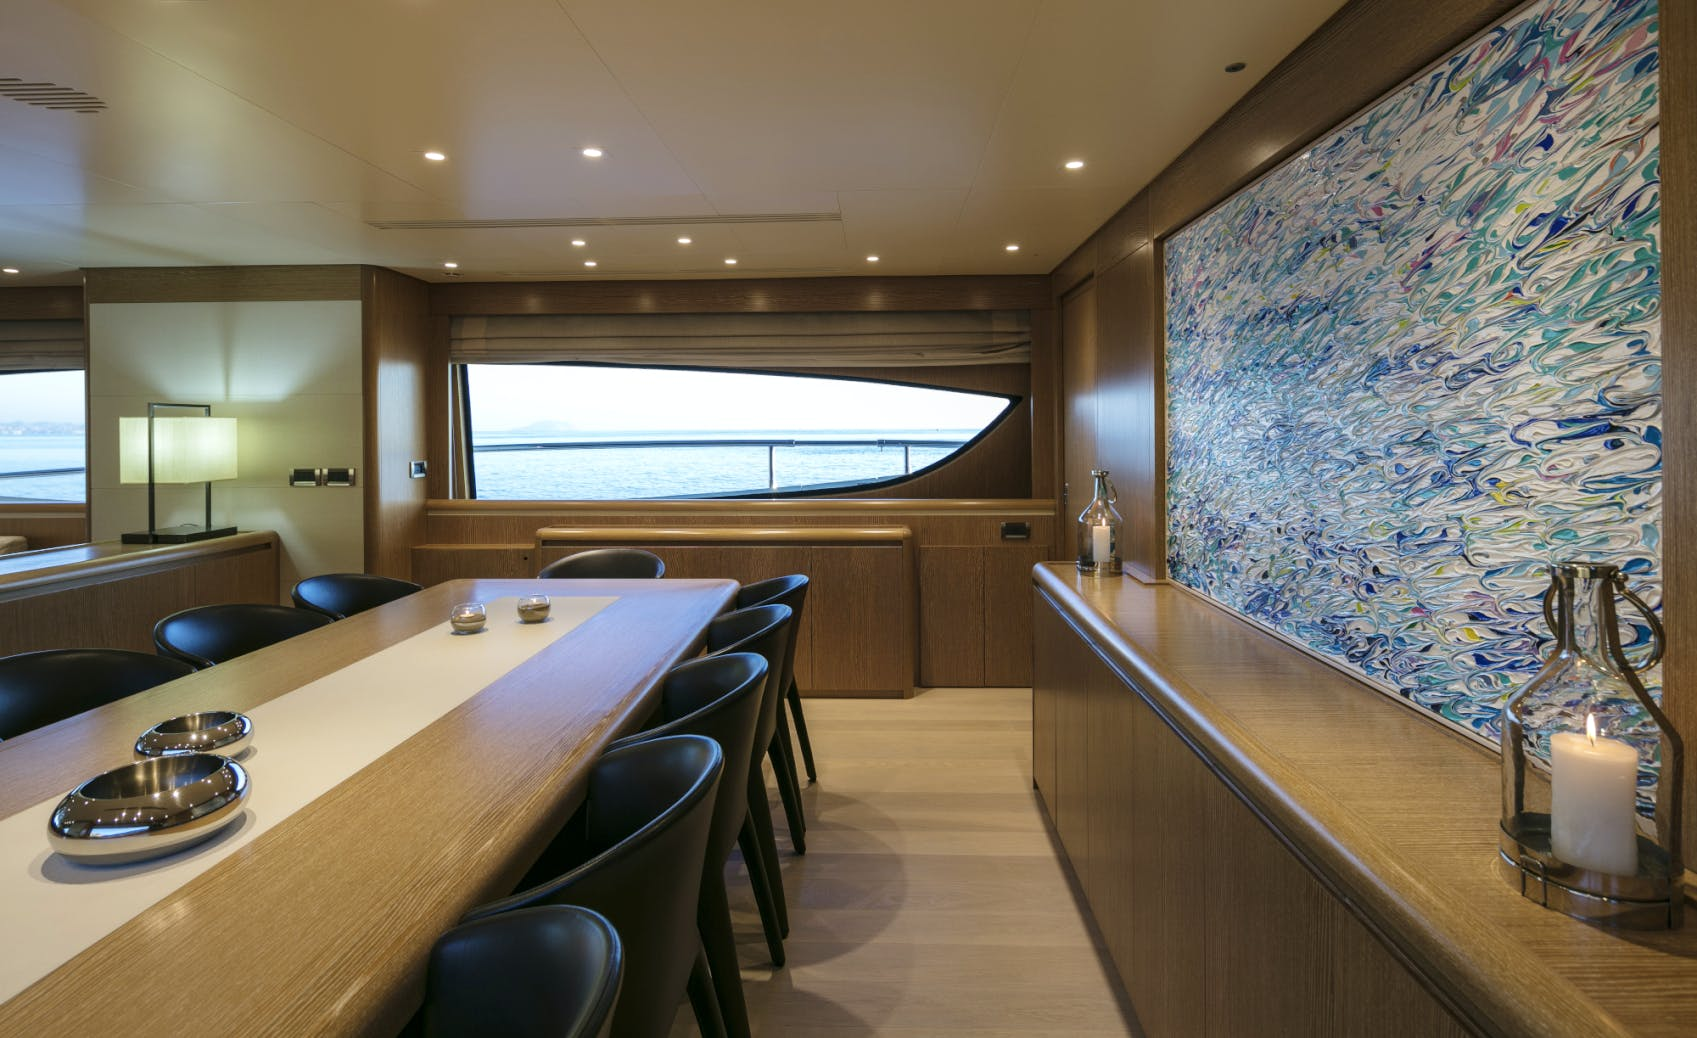 Seasonal Rates for RINI V Private Luxury Yacht For Charter